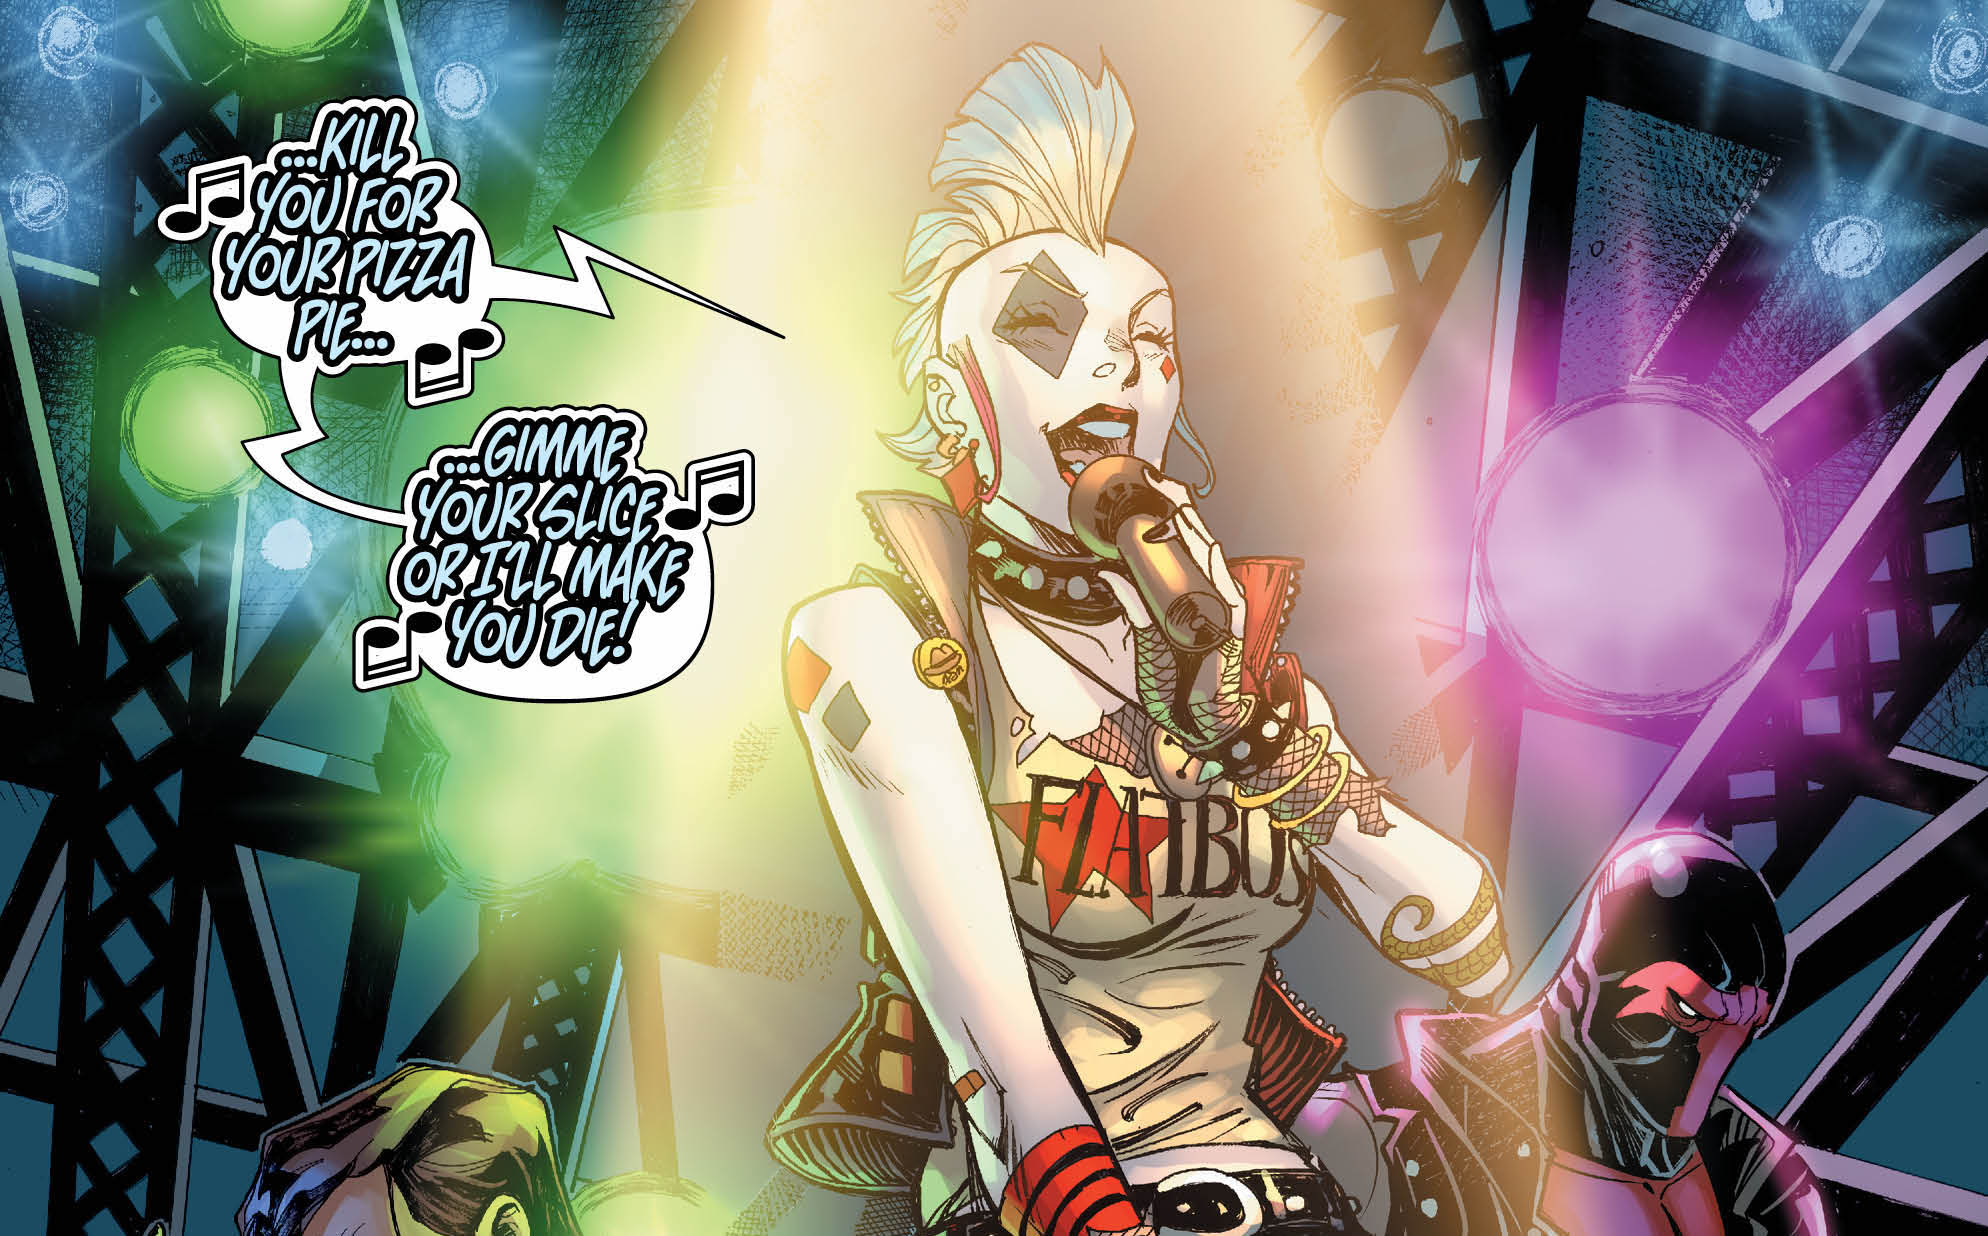 Harley Quinn Writers Jimmy Palmiotti and Amanda Conner Discuss Character, Craft and a Whole Lot More